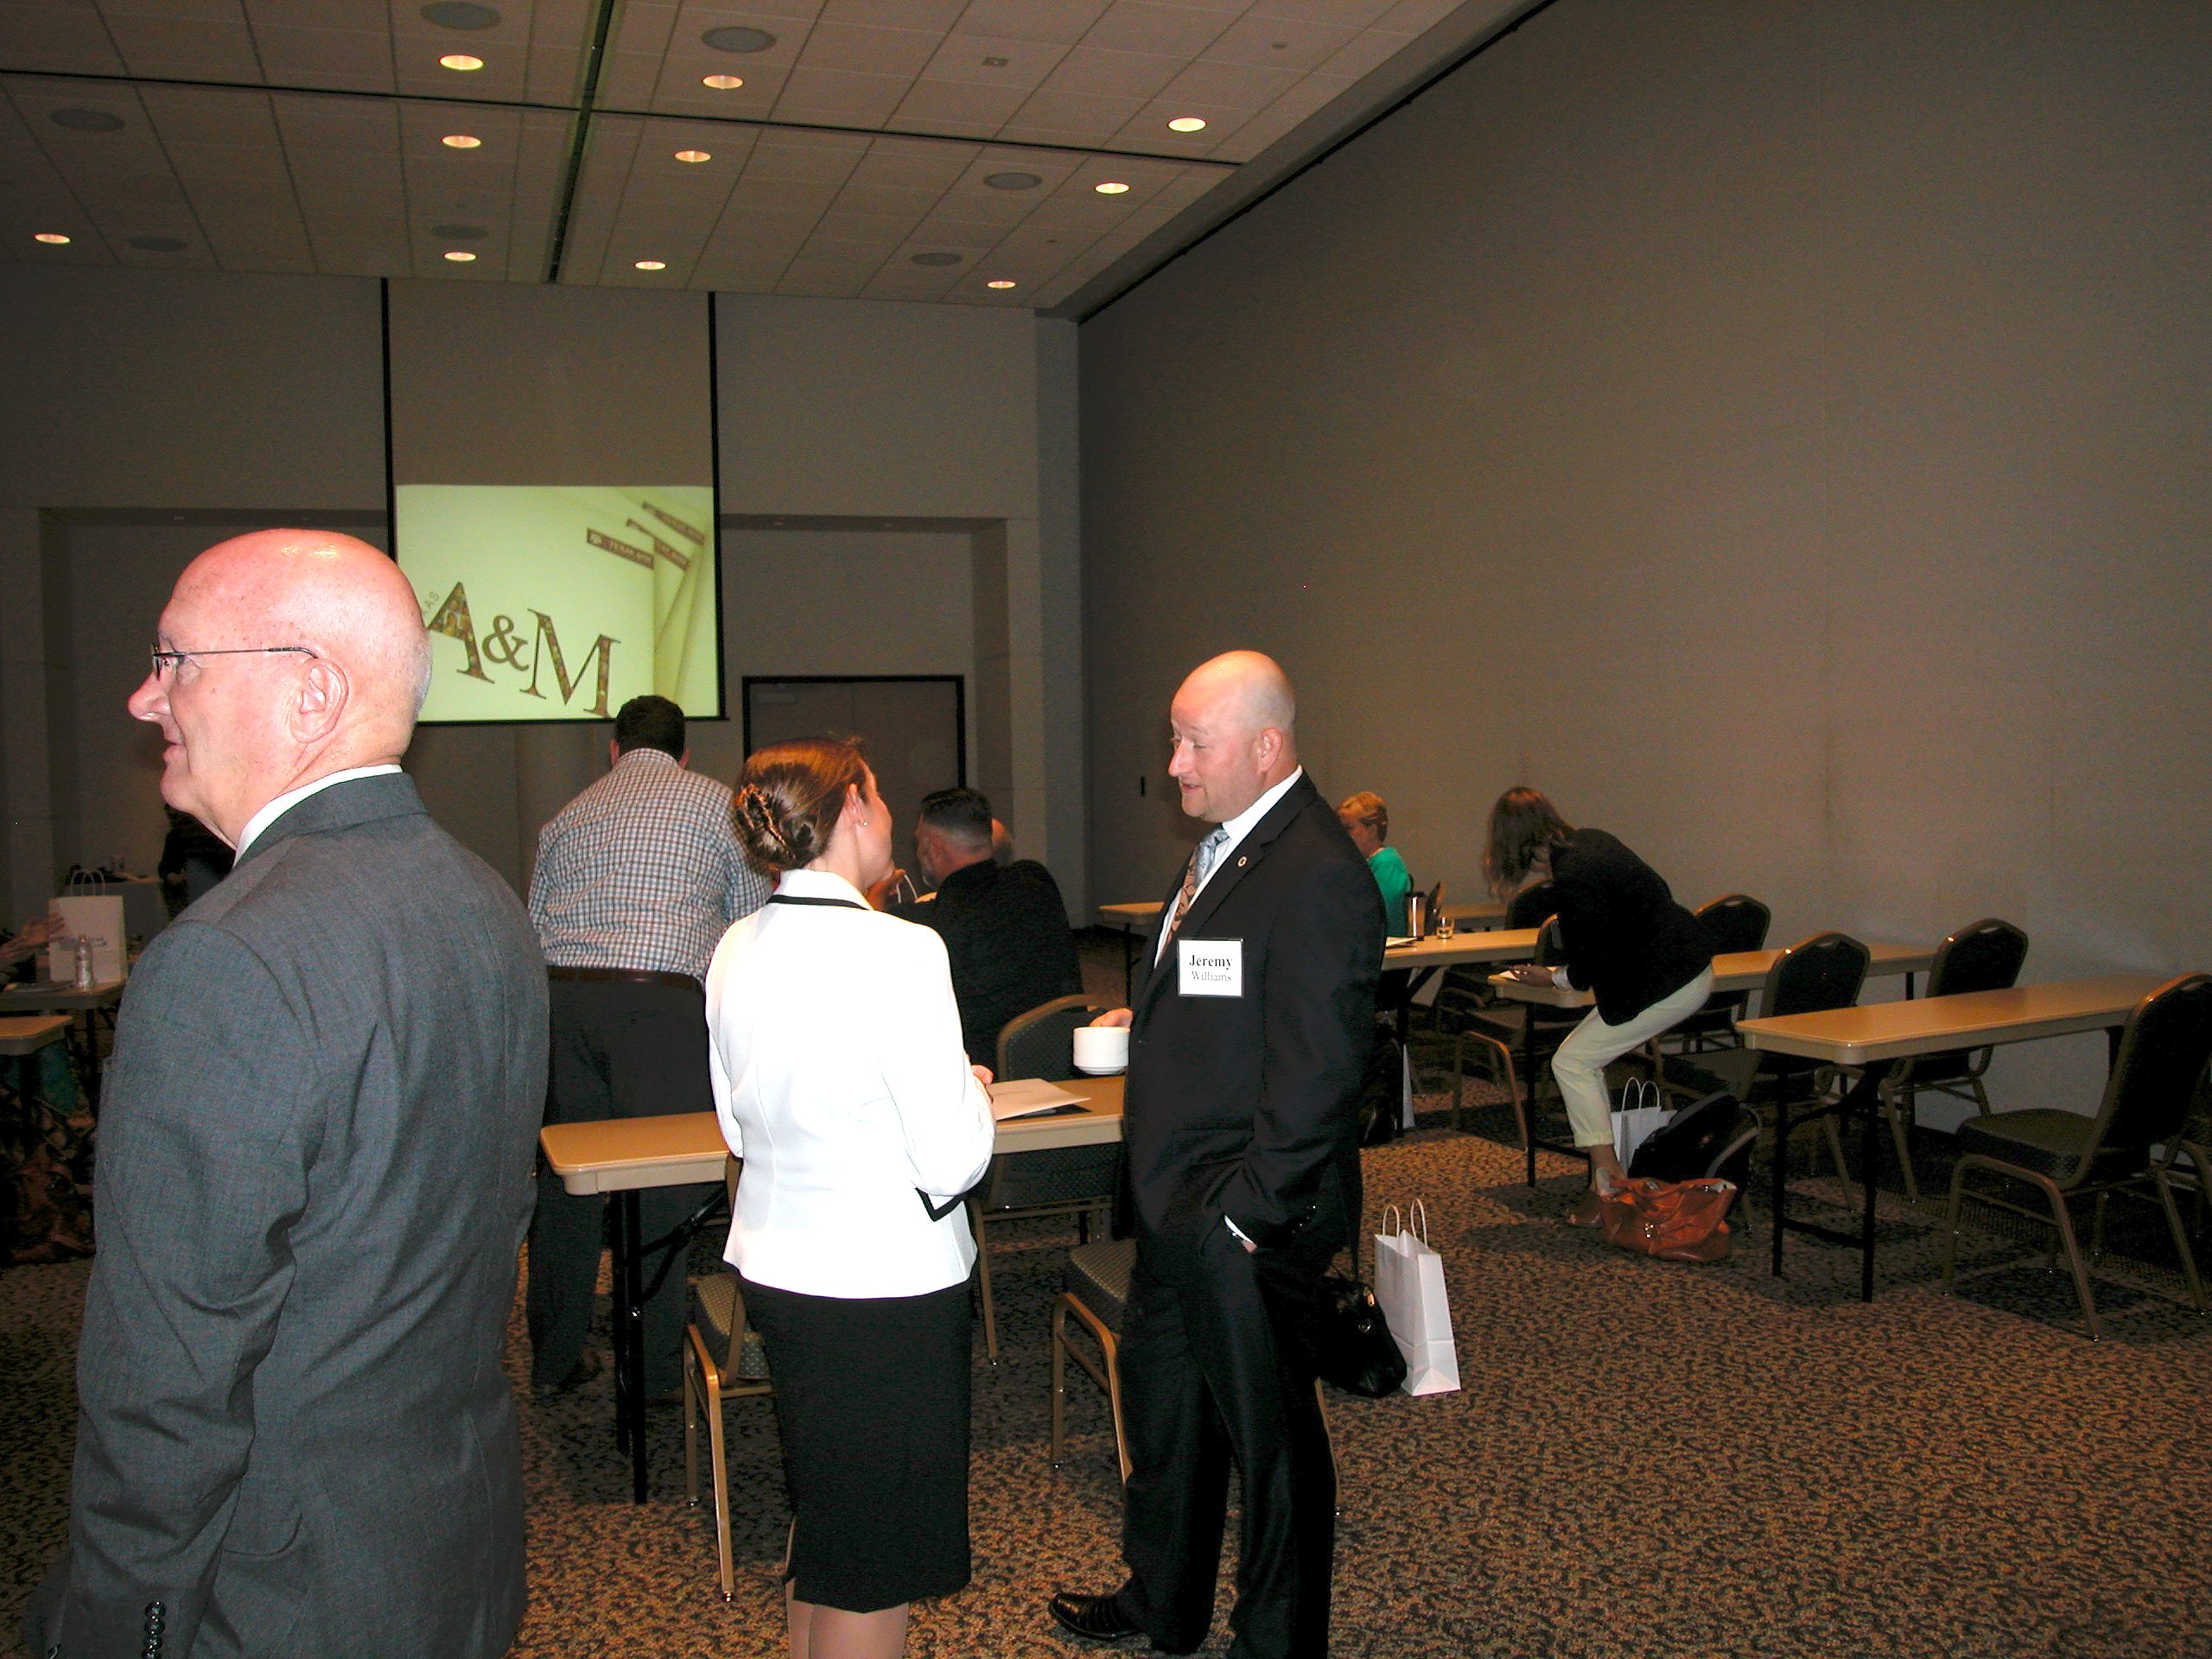 Executive students chat with faculty and staff before the EMPSA Program Introduction